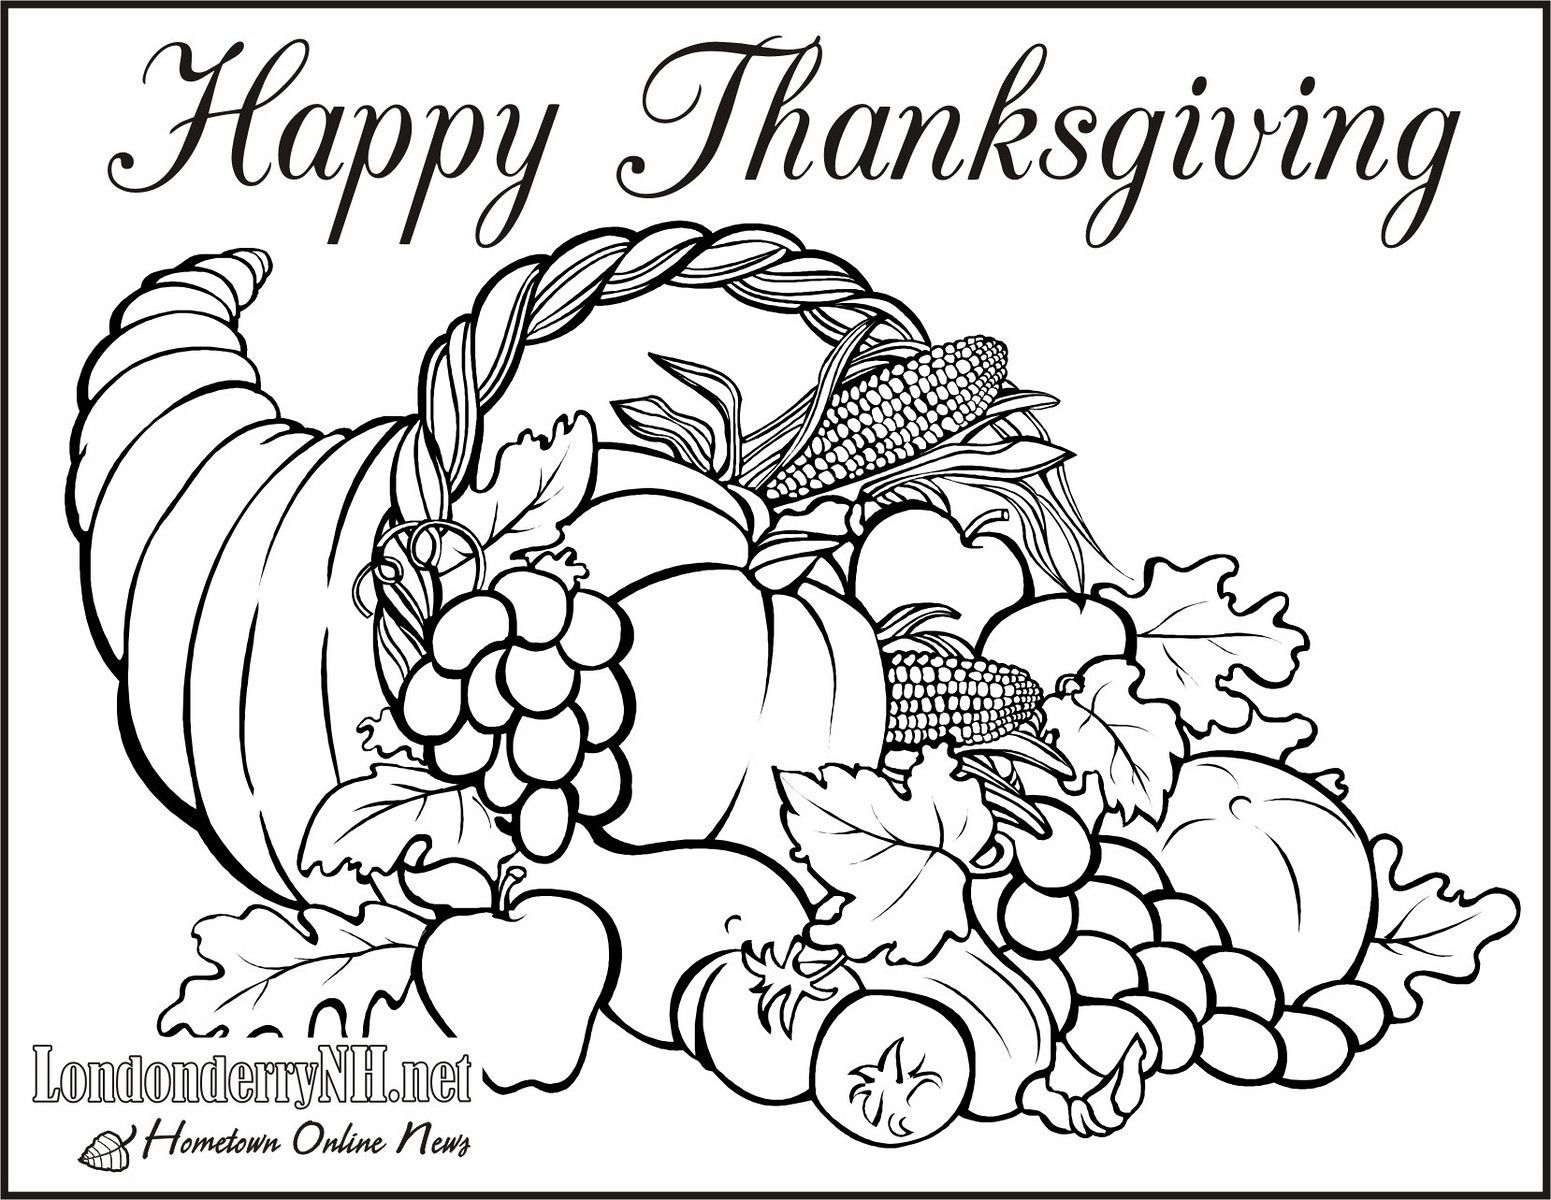 Thanksgiving Coloring Pages | Forcoloringpages.com | Library ...